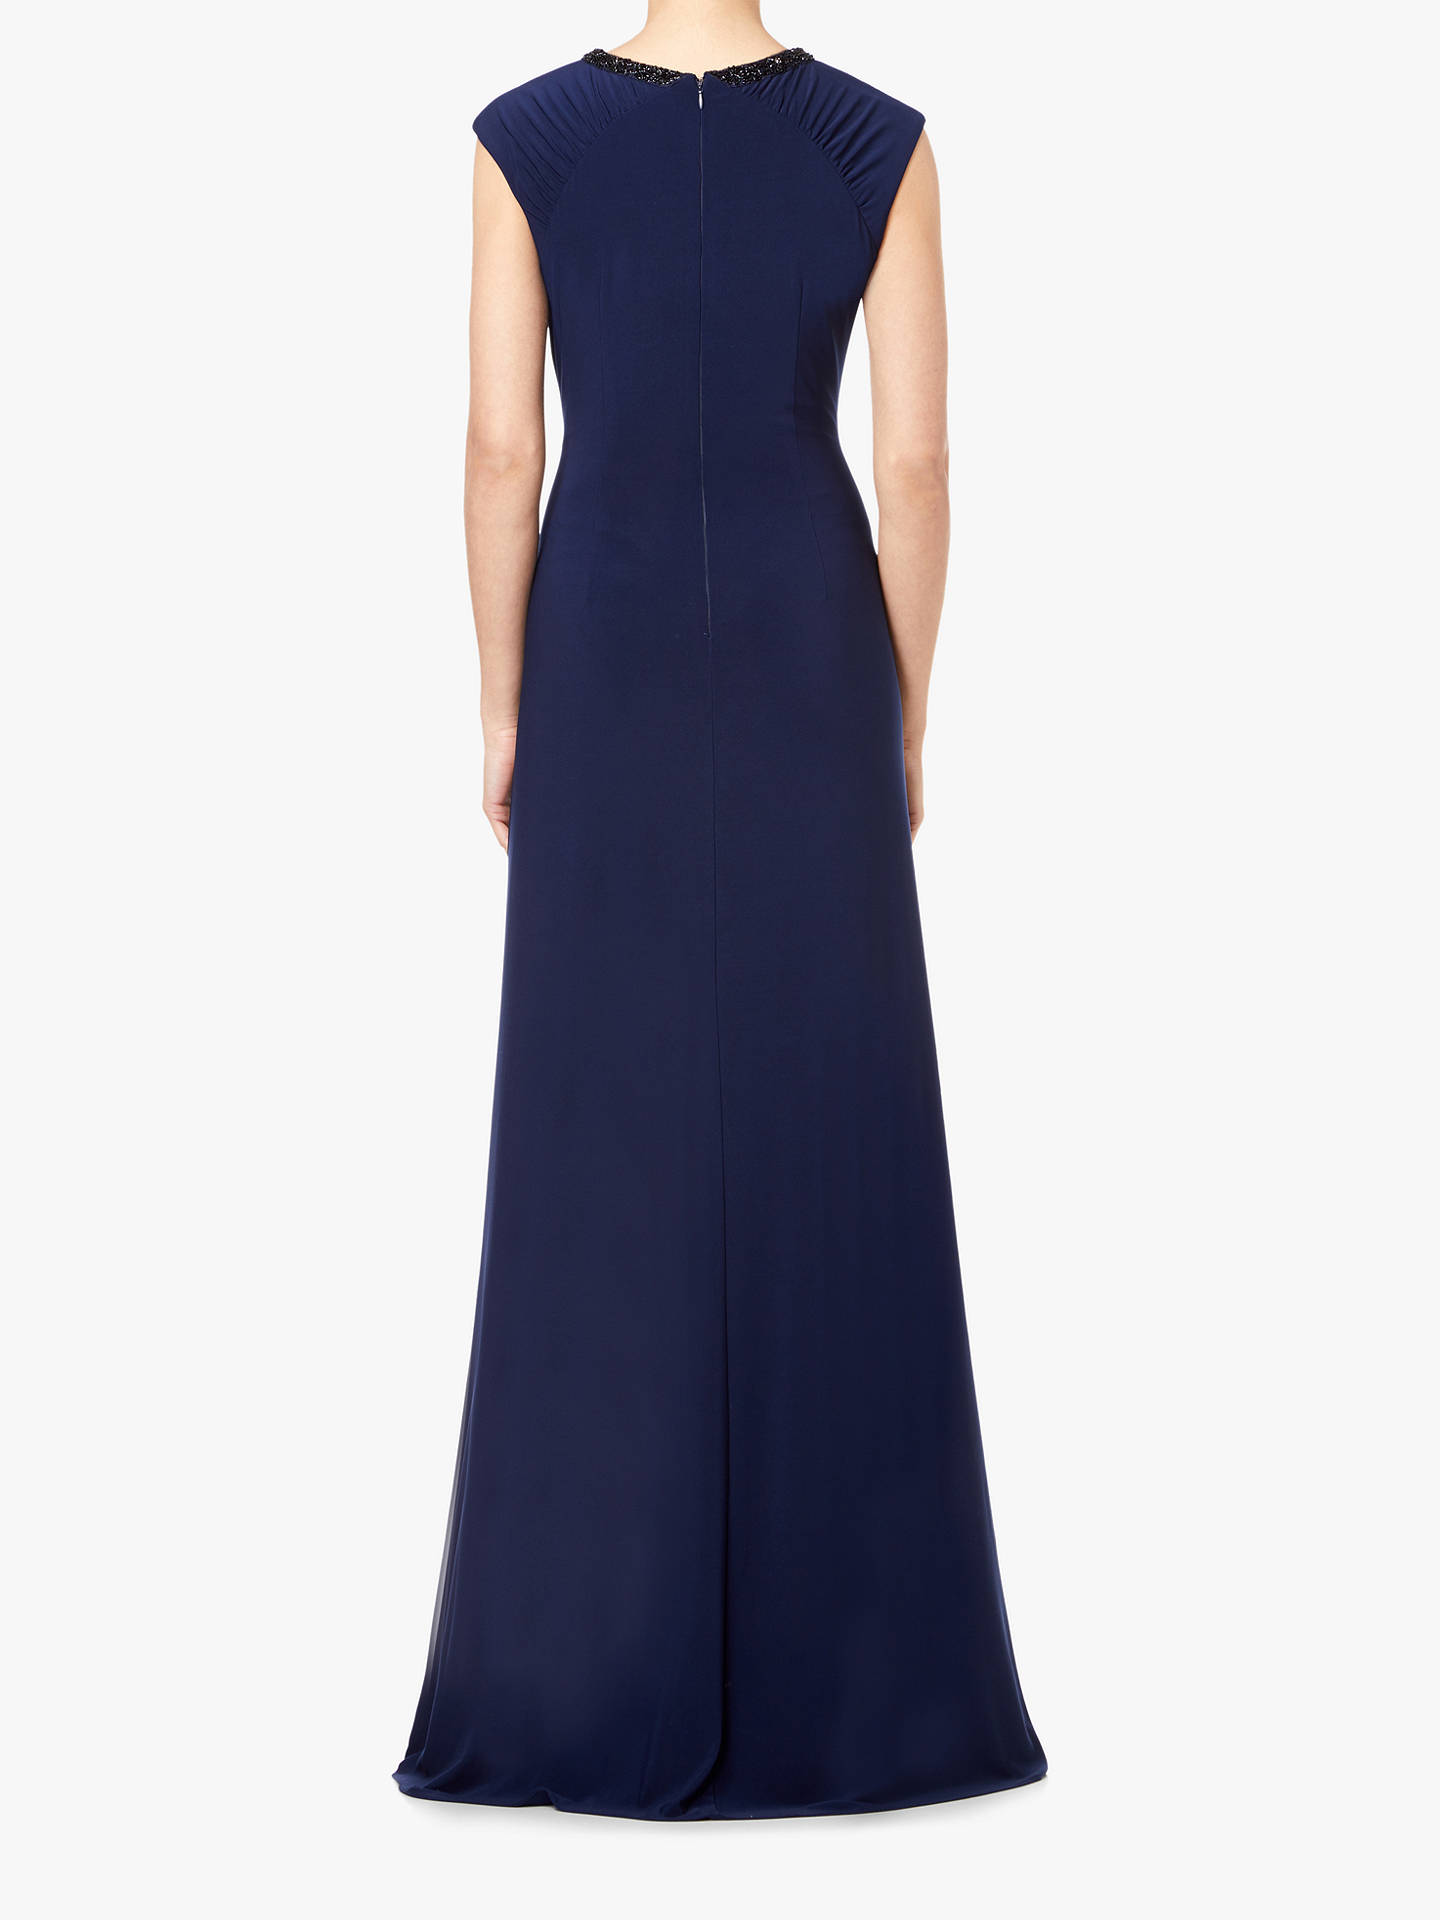 BuyAdrianna Papell Embellished Jersey Maxi Dress, Midnight, 14 Online at johnlewis.com